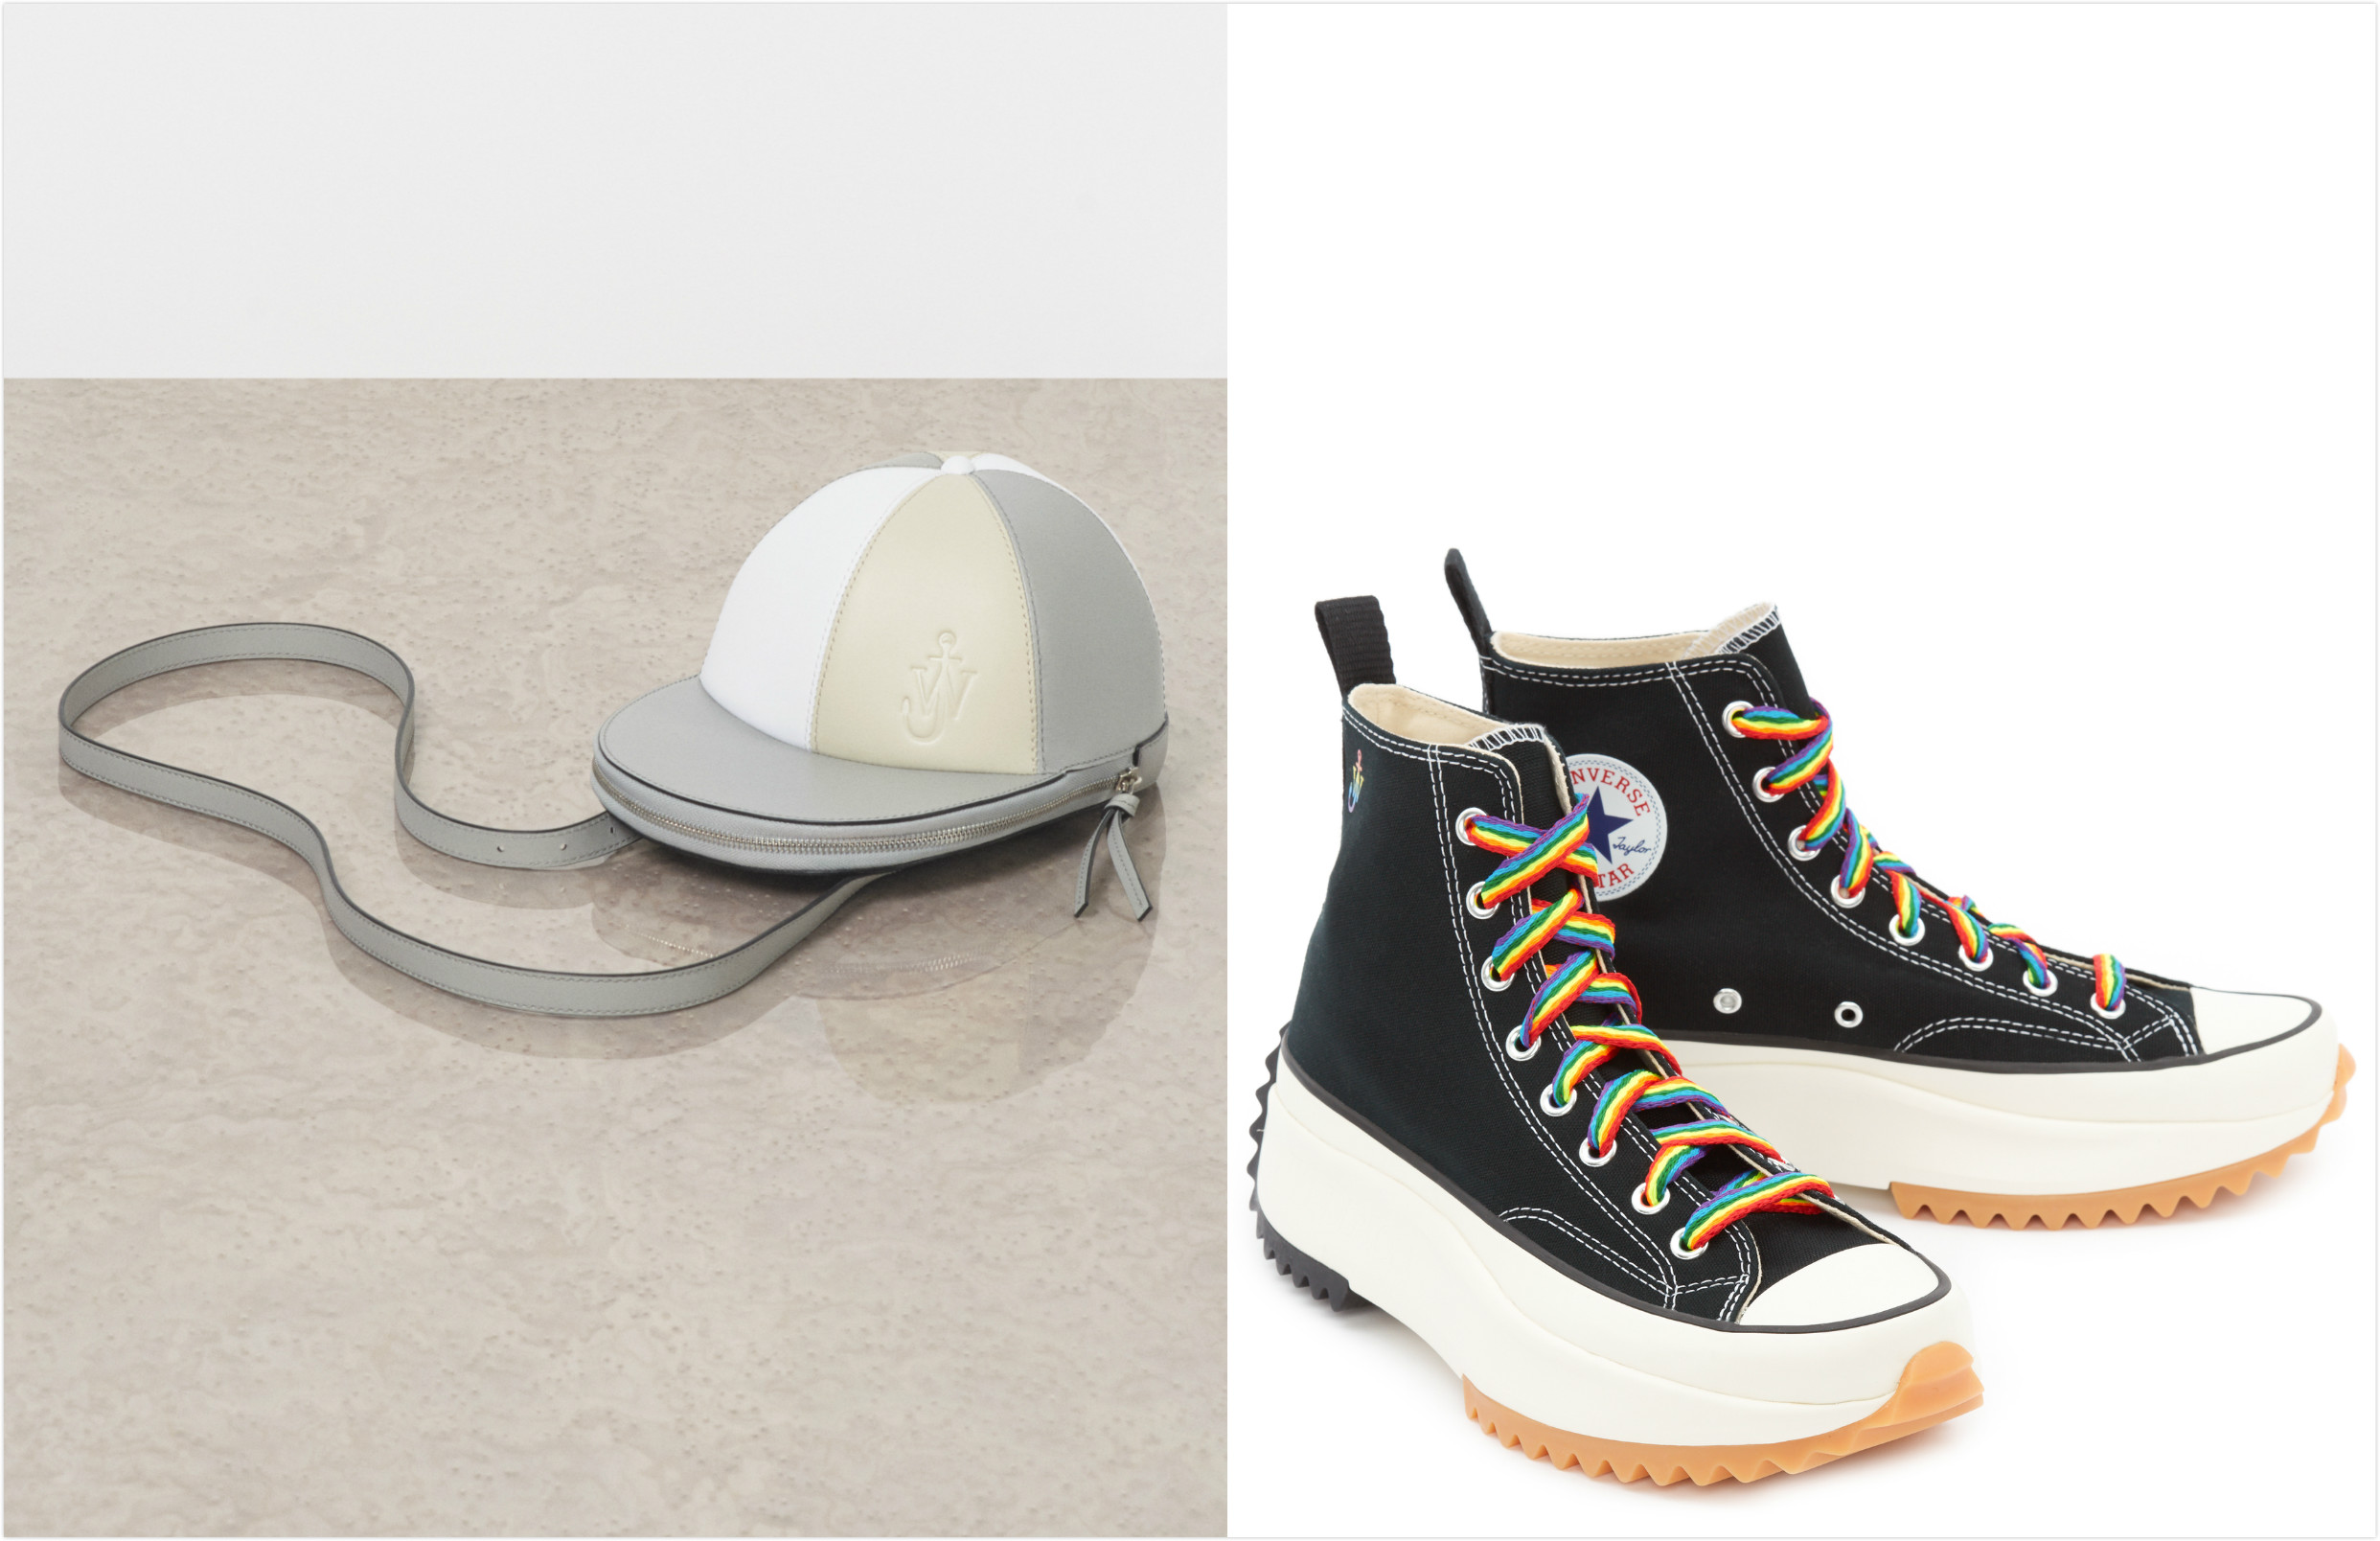 Exclusive JW Anderson cap bag and Converse collaboration sneakers for SKP Beijing